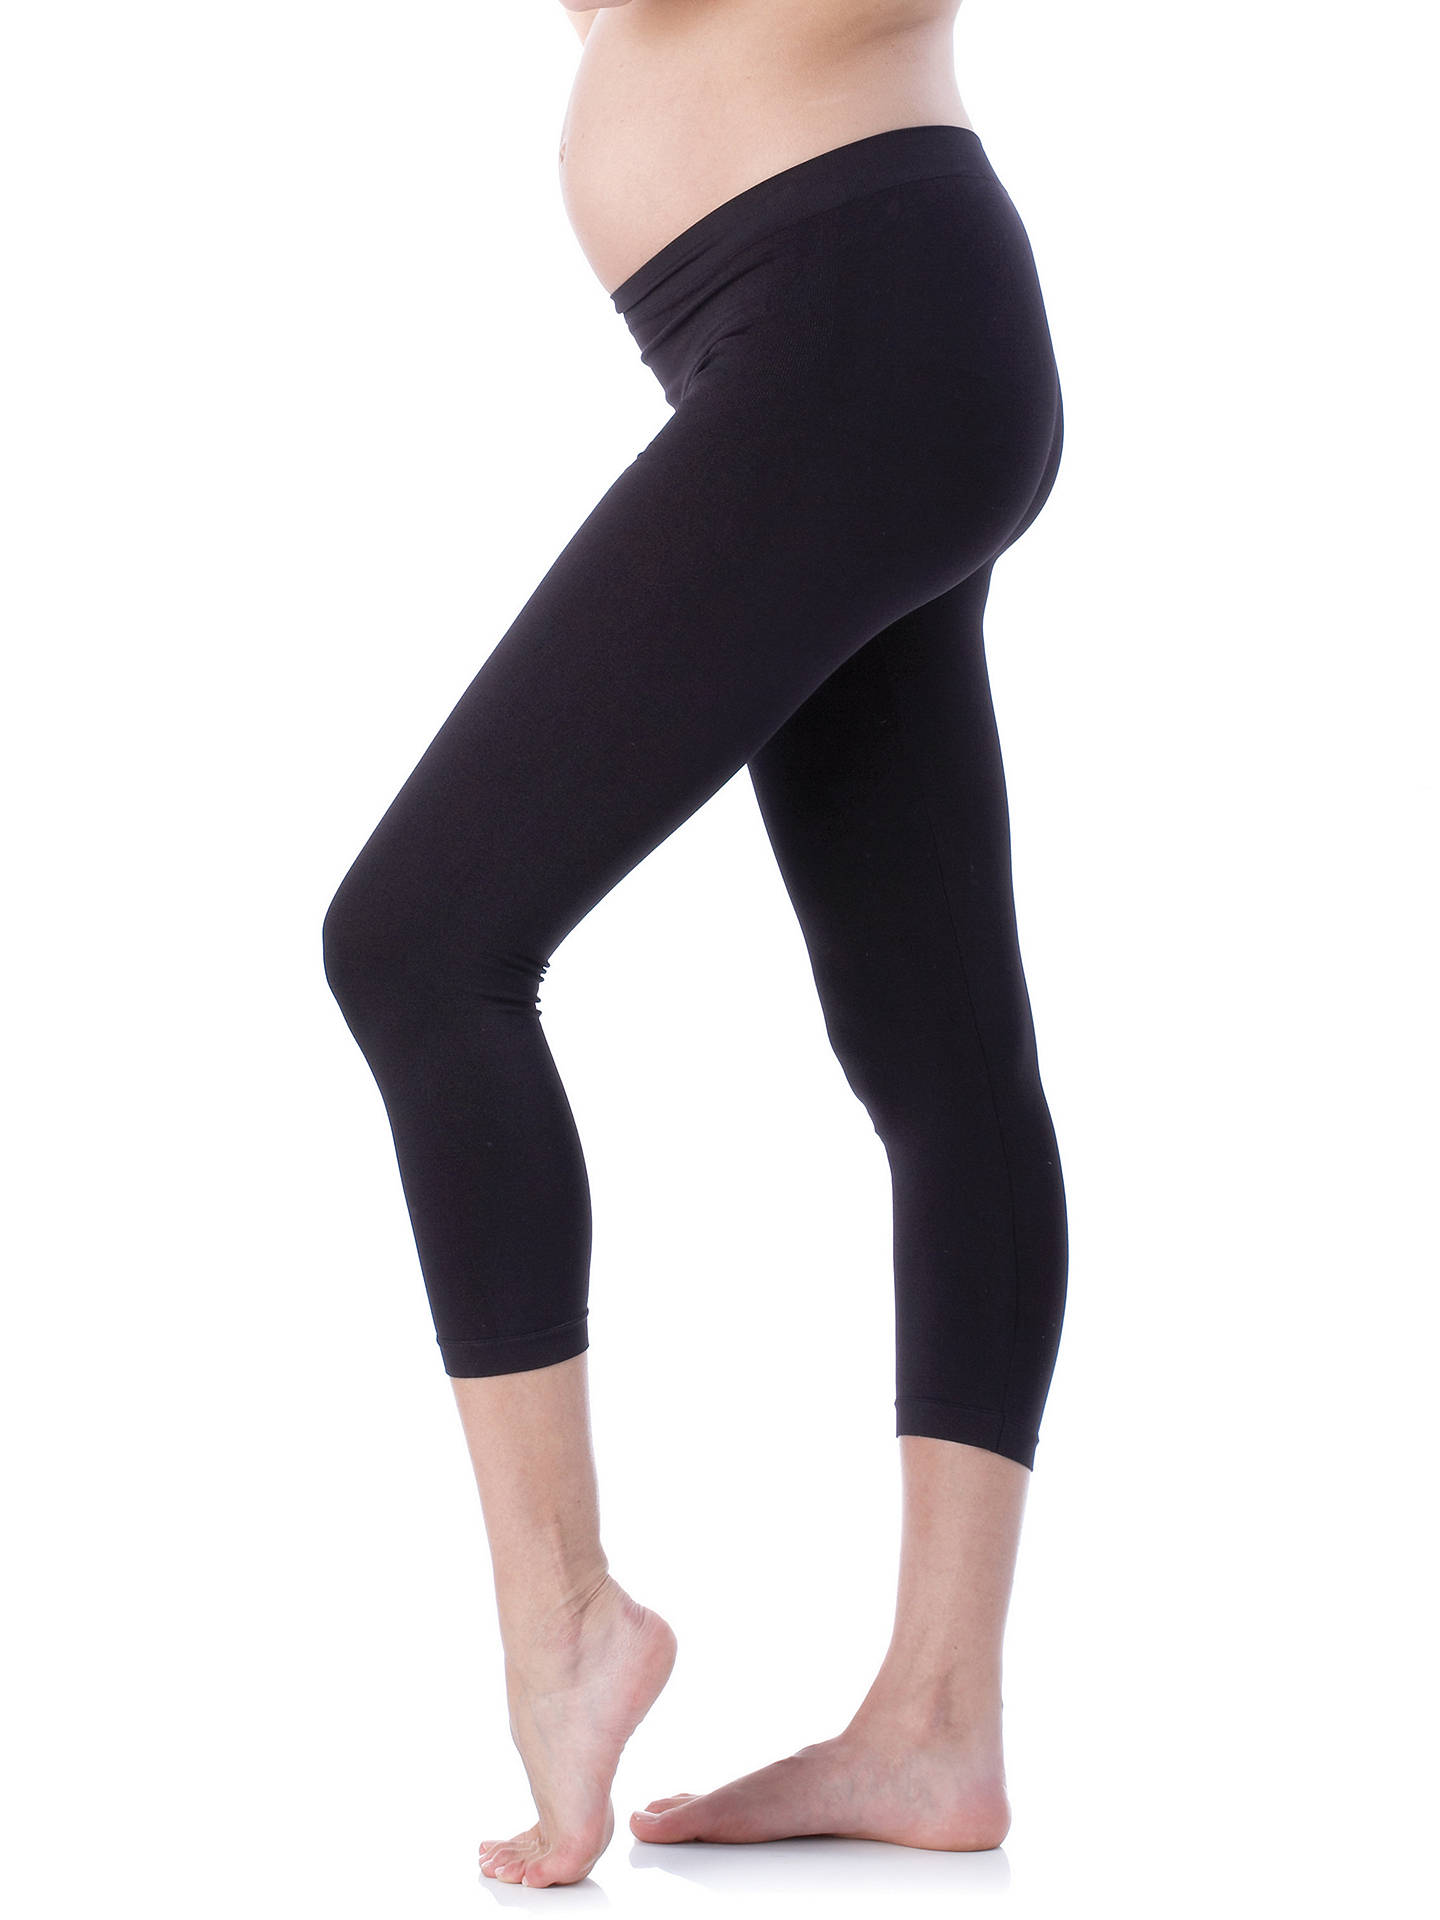 e5ba15a15a8634 Buy Séraphine Holi Cropped Maternity Leggings, Black, S-M Online at  johnlewis.com ...